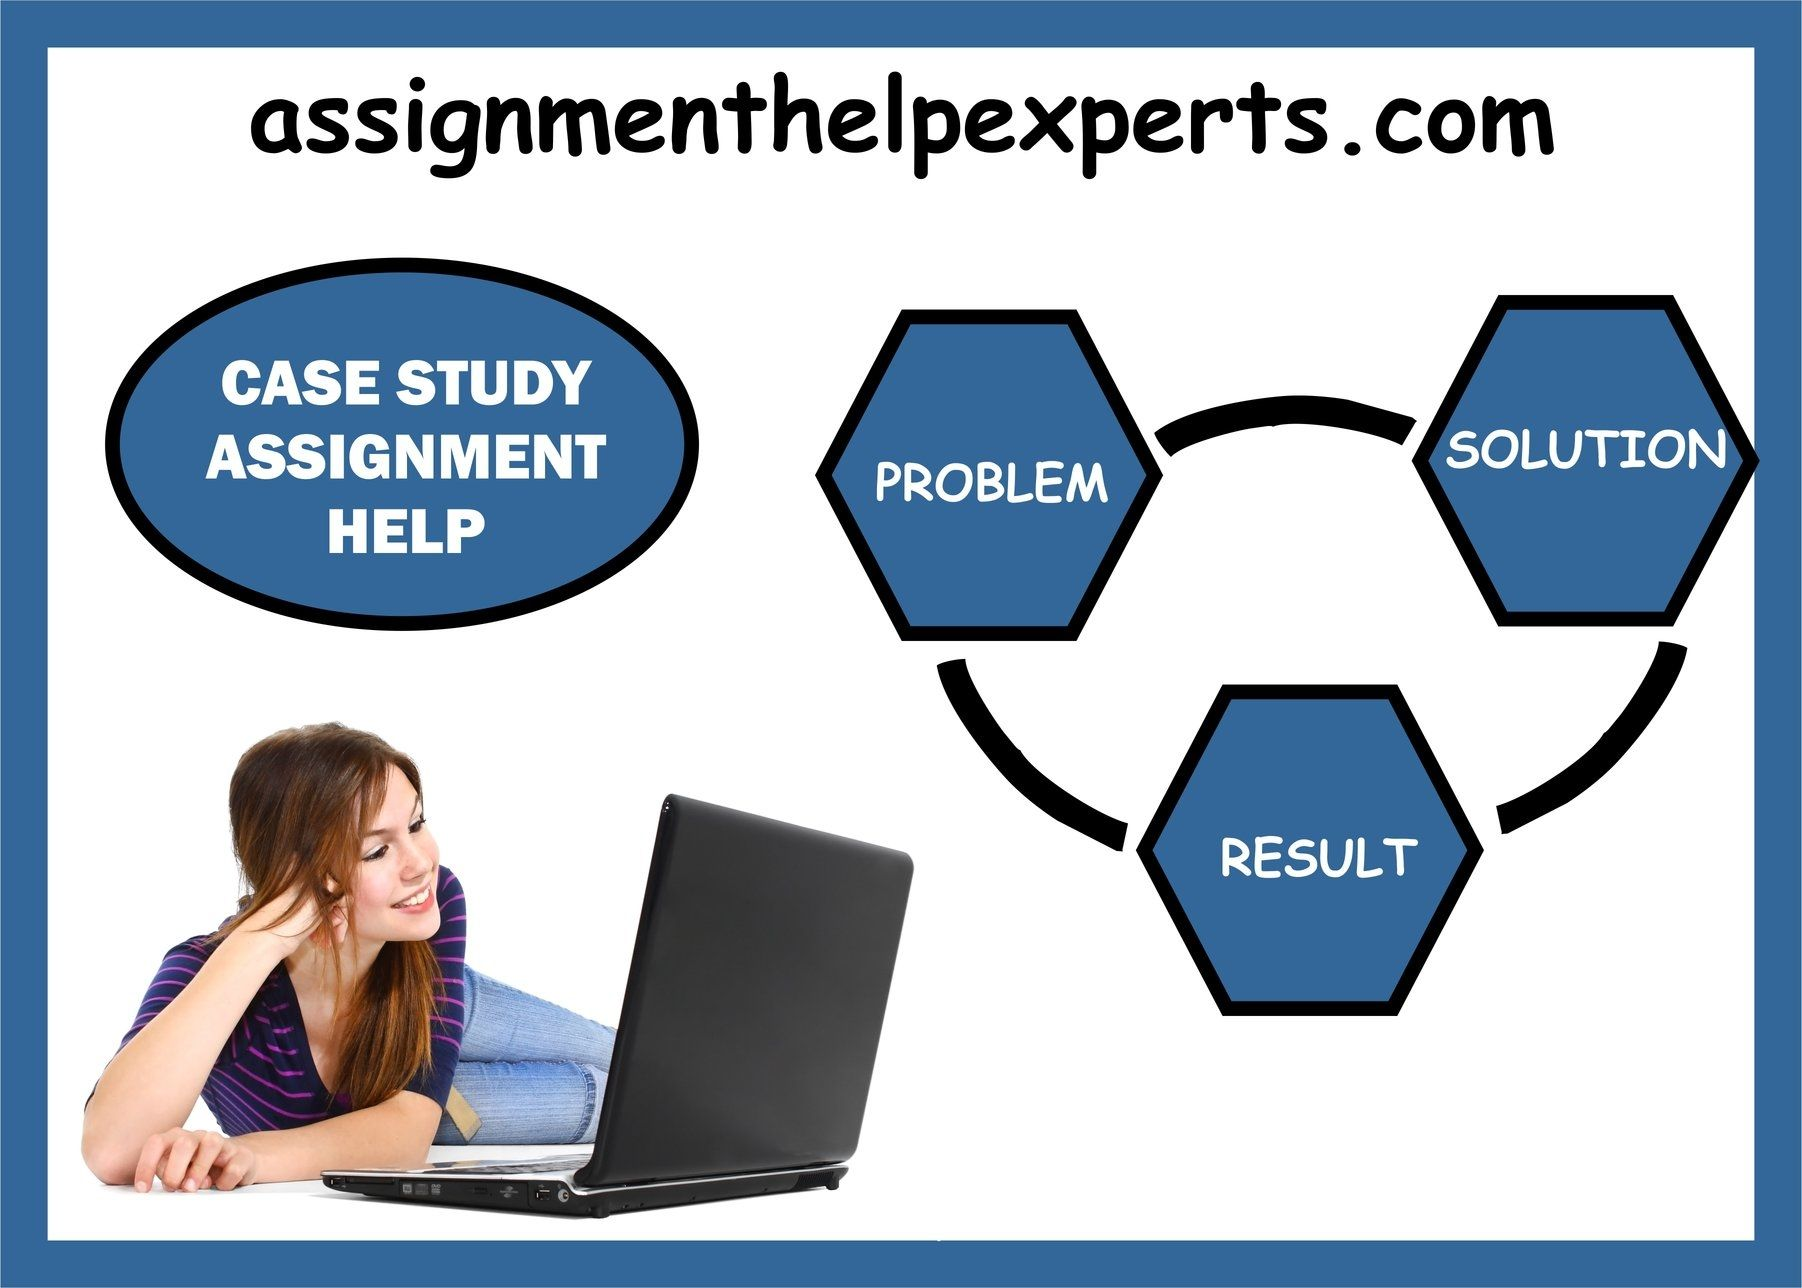 assignment help on case study by assignmenthelpexperts com assignment help on case study by assignmenthelpexperts com